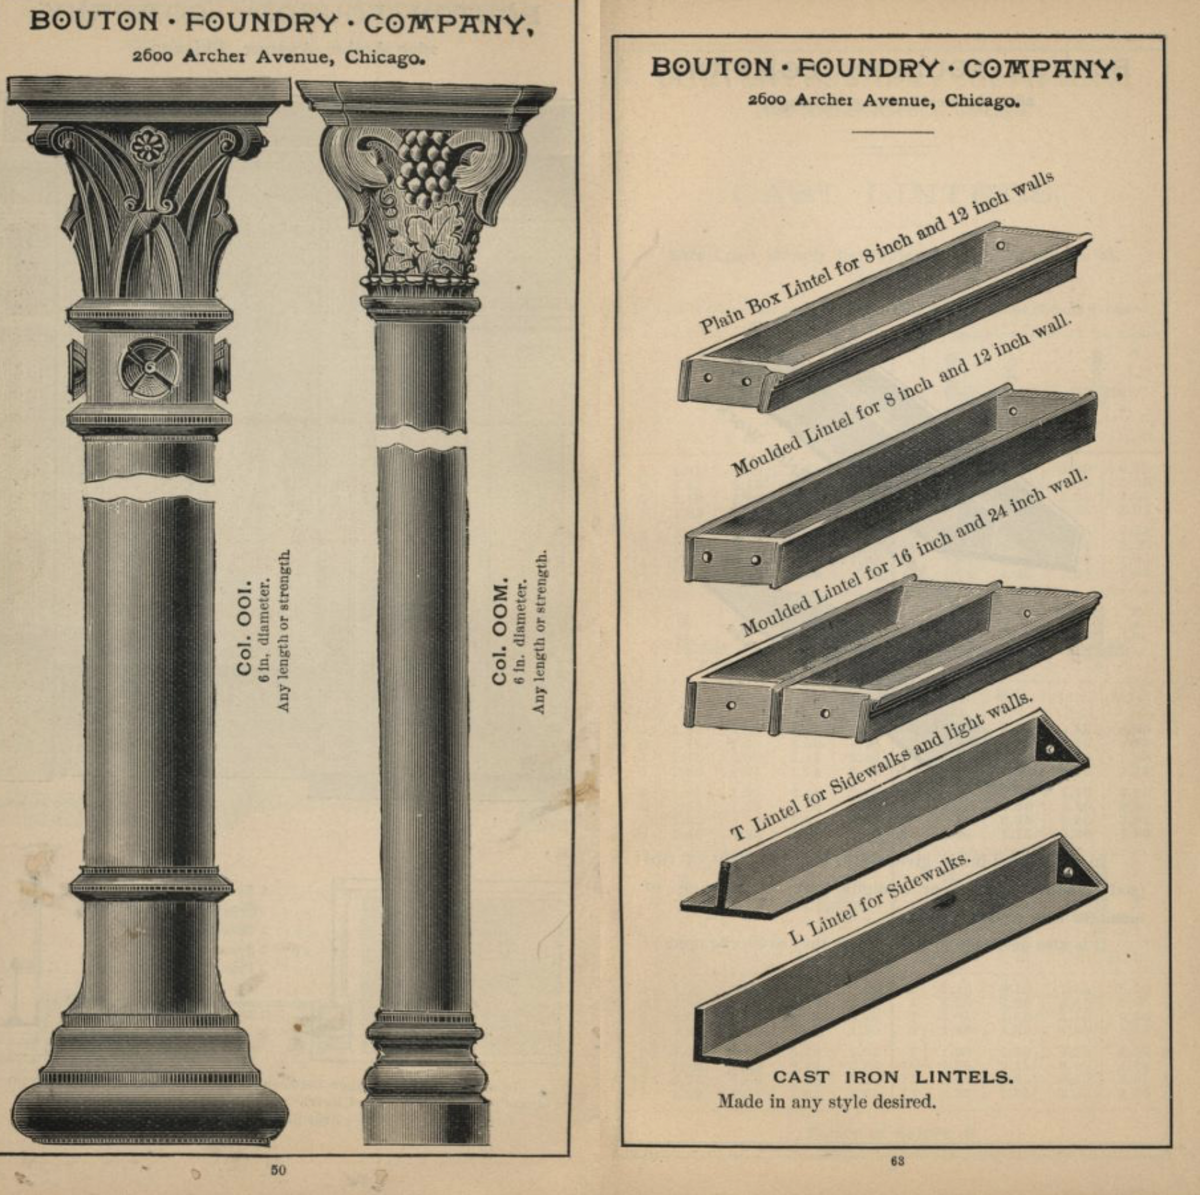 Manual of the Bouton Foundry Company